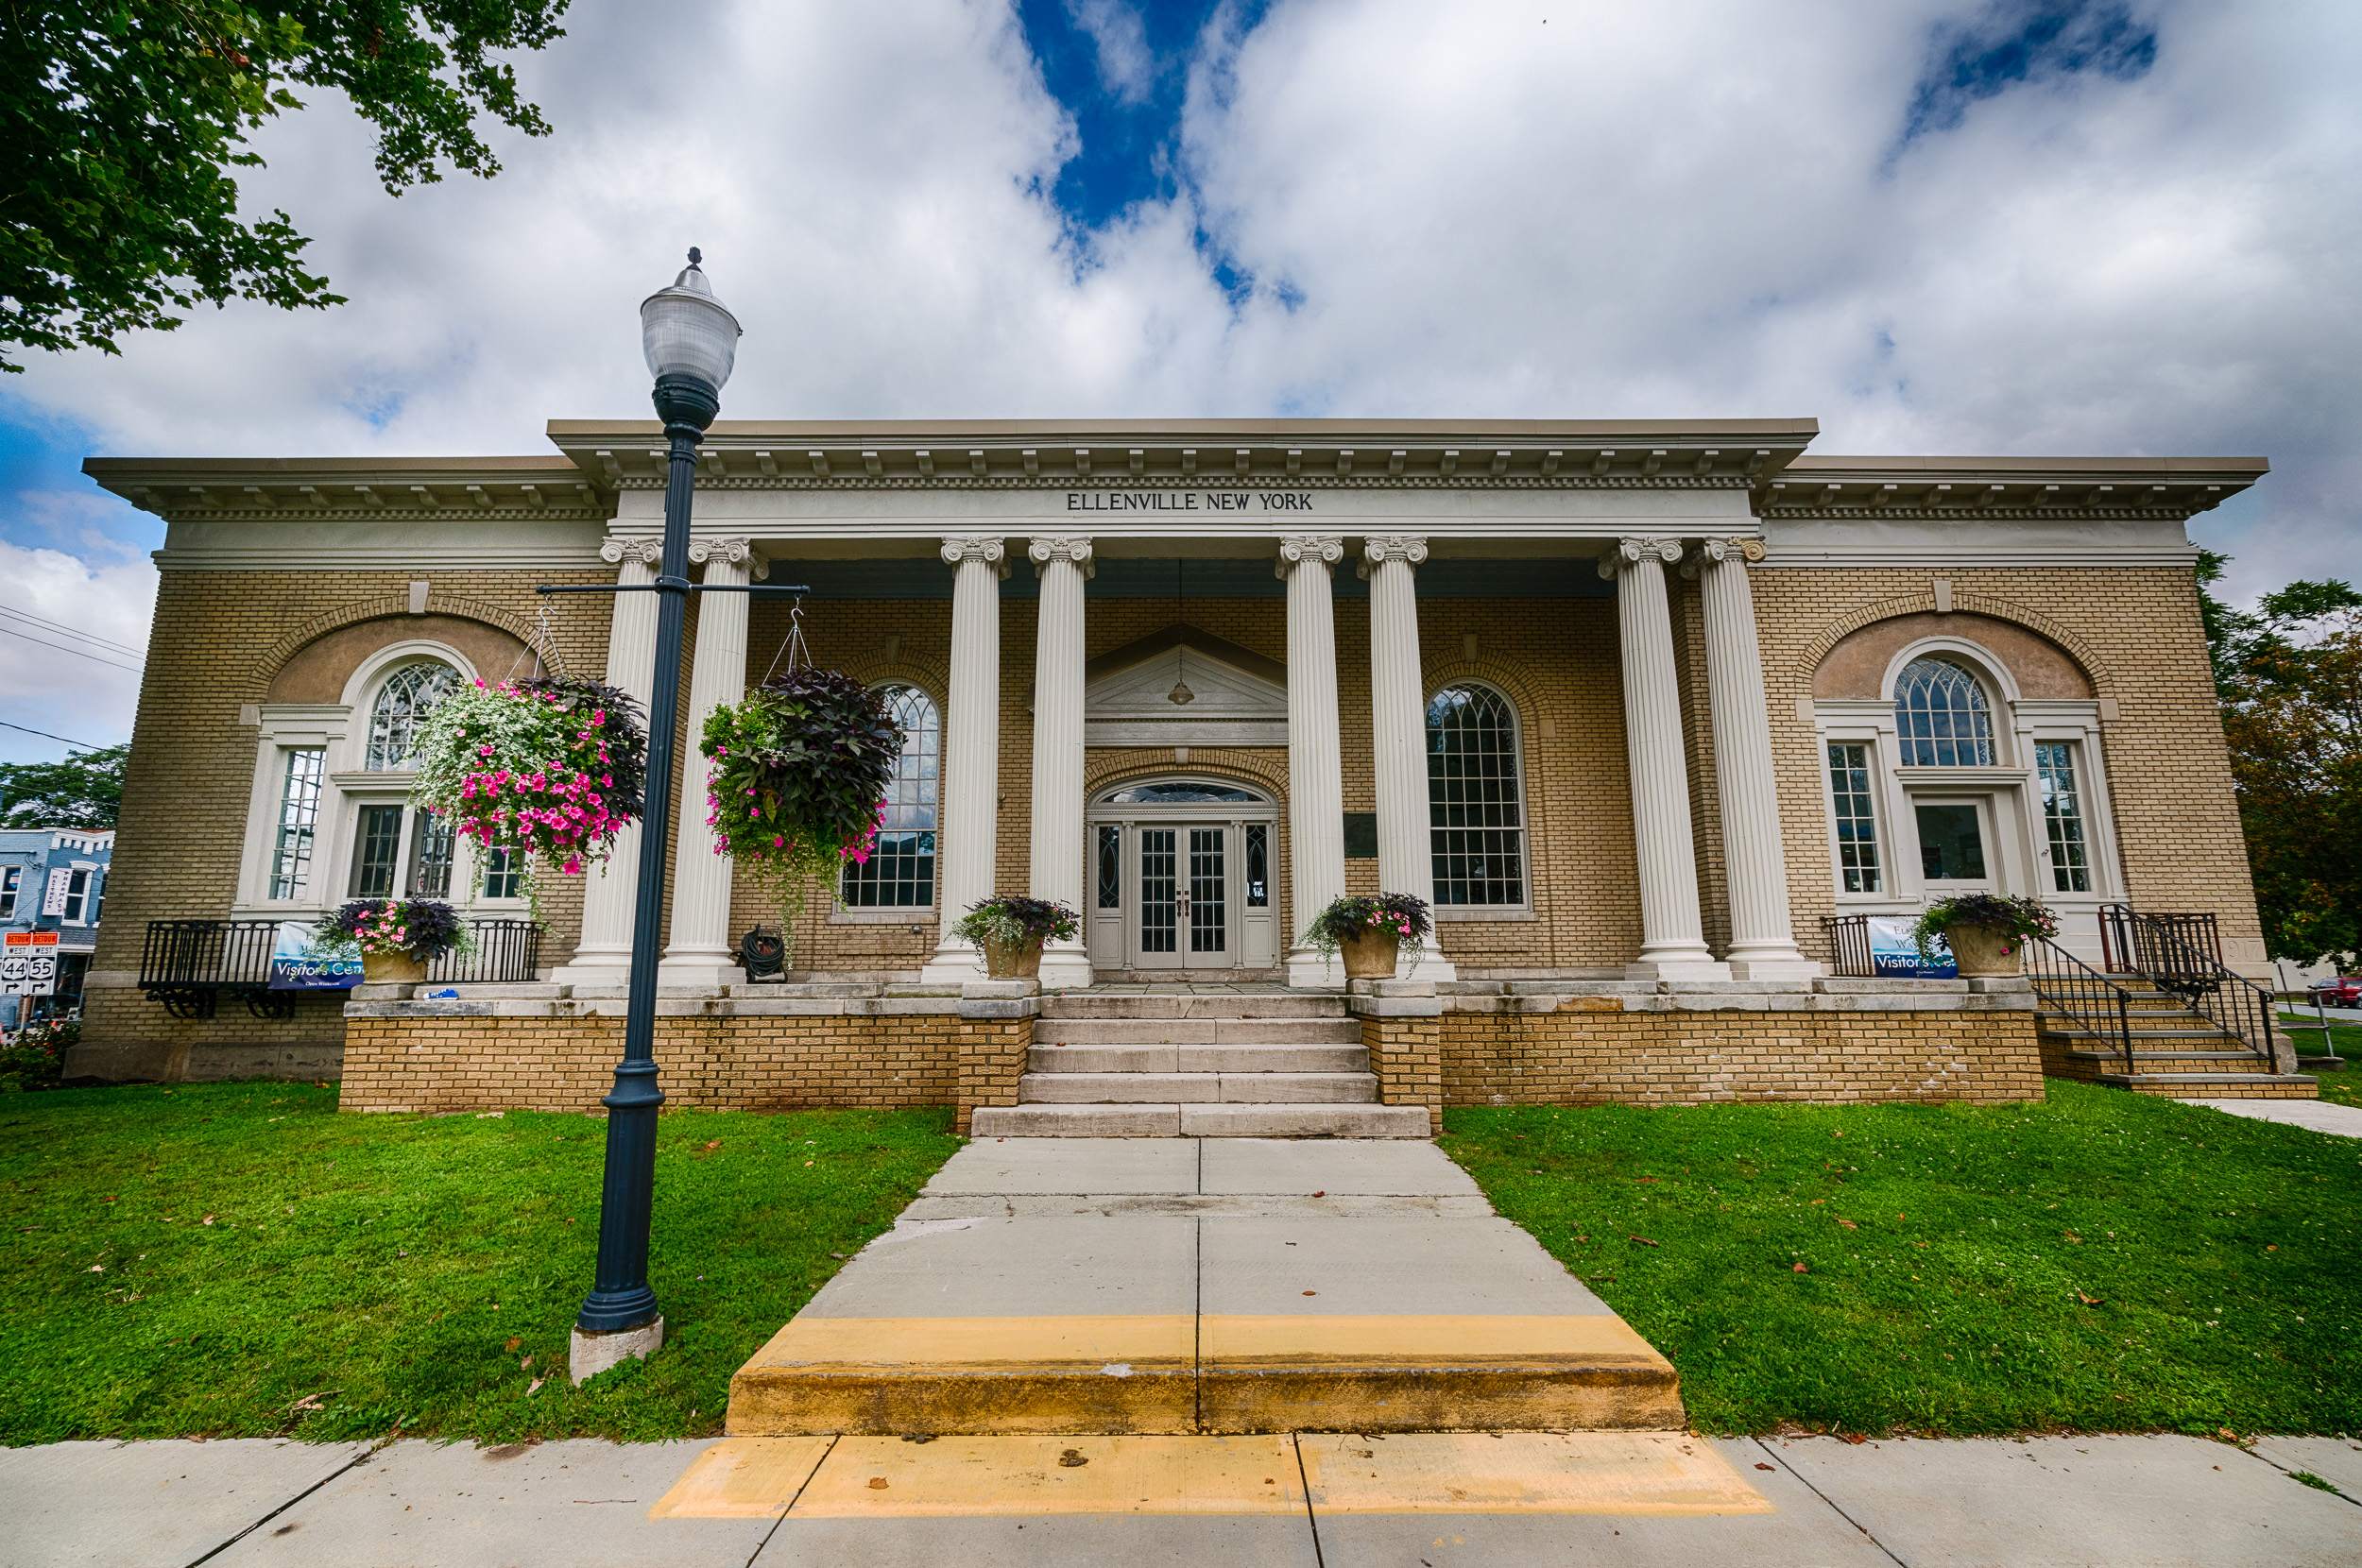 Ellenville - HDR Photo w/ Sony A99 II and 16-35mm f/2.8 ZA Lens